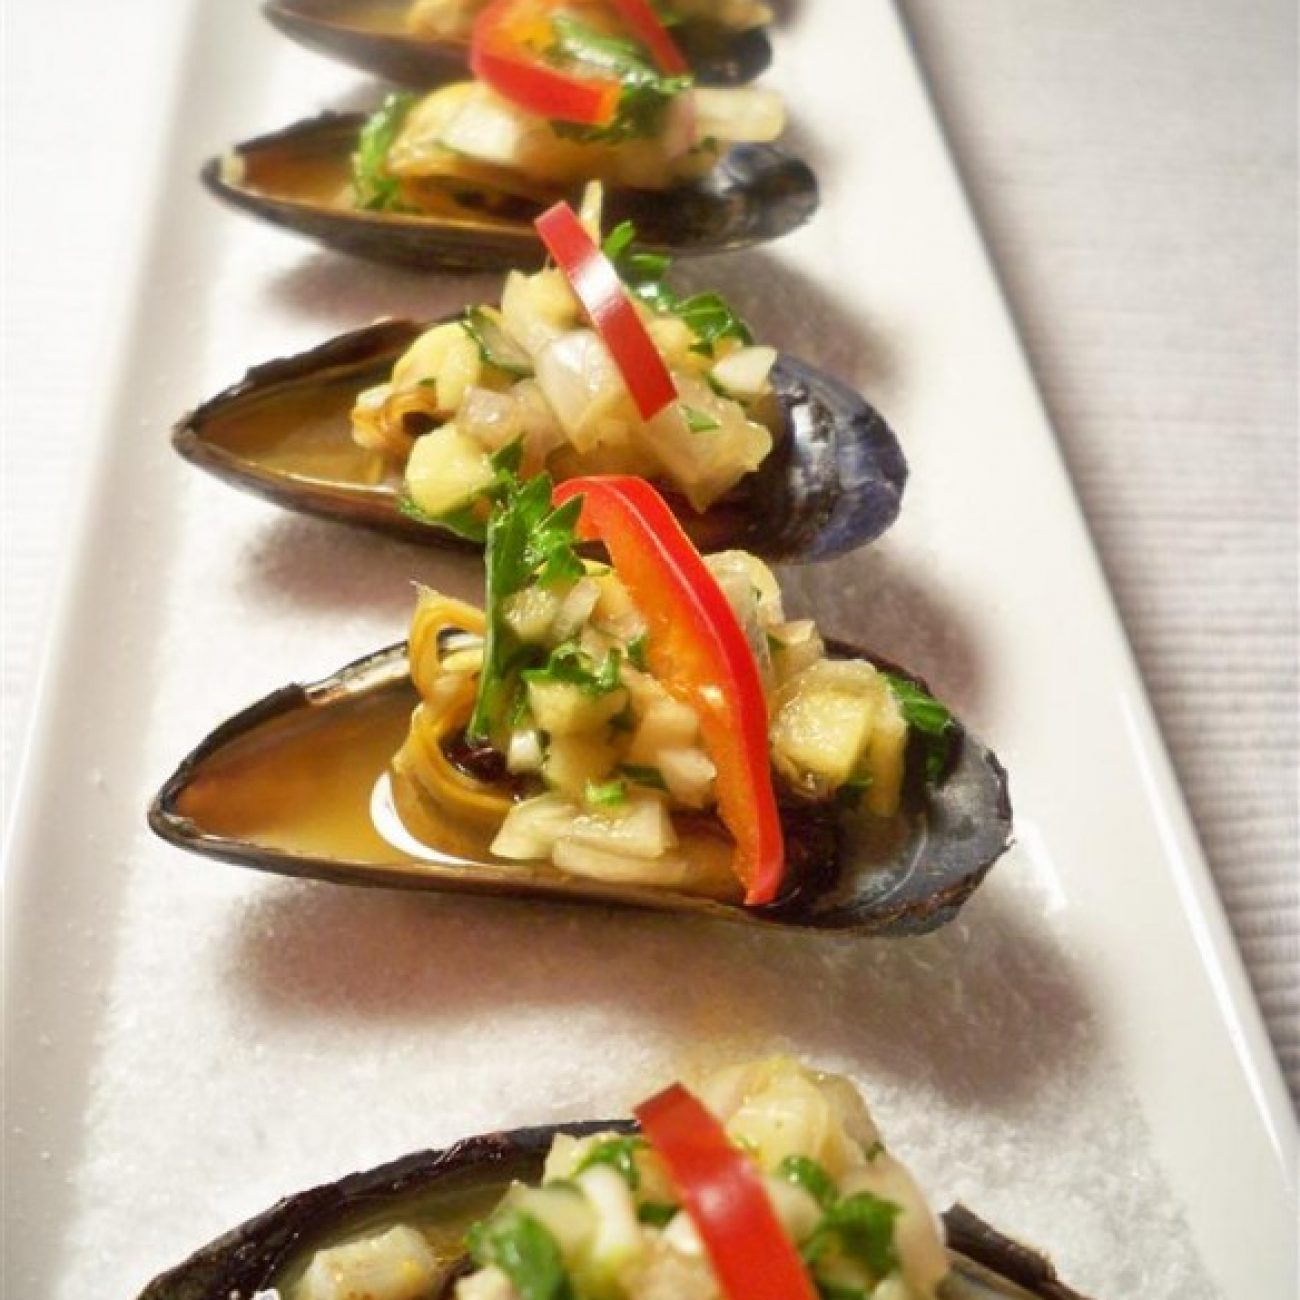 Mussels with Spicy Salsa